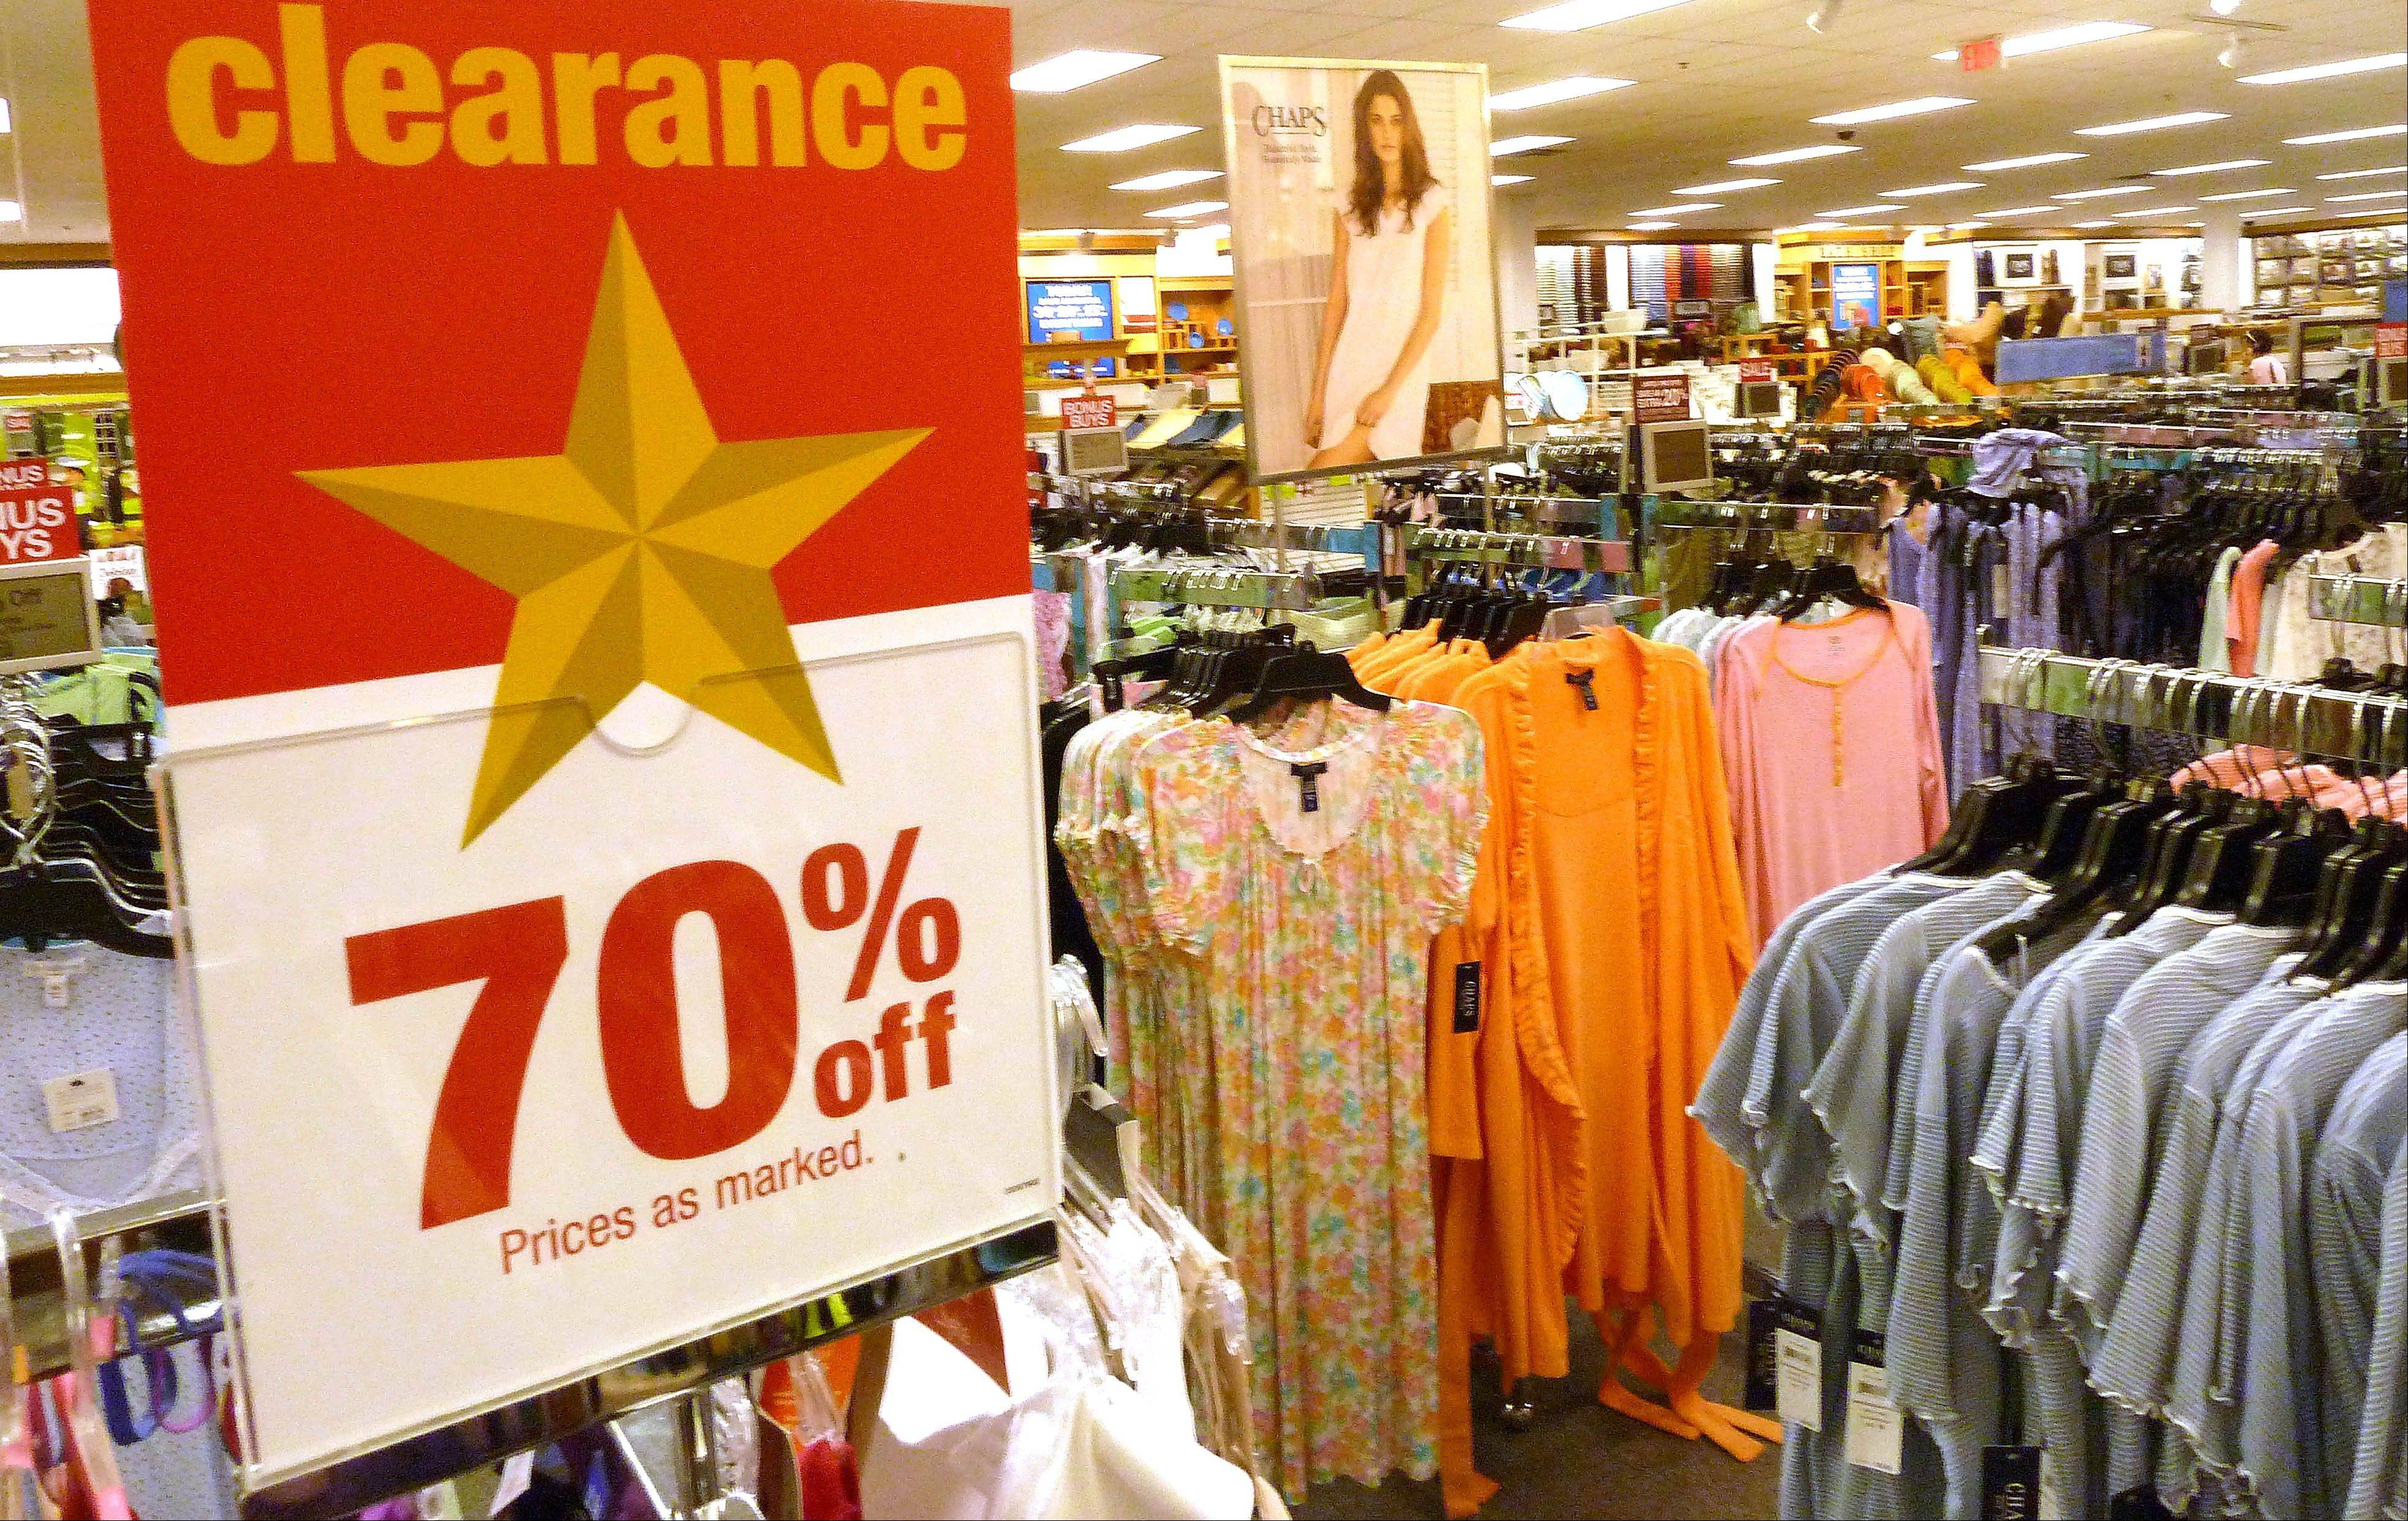 Shirts and blouse hang on racks at a clothing store in North Andover, Mass. American shoppers, worried about jobs and the overall economy, pulled back on spending in June, resulting in tepid sales for many retailers.